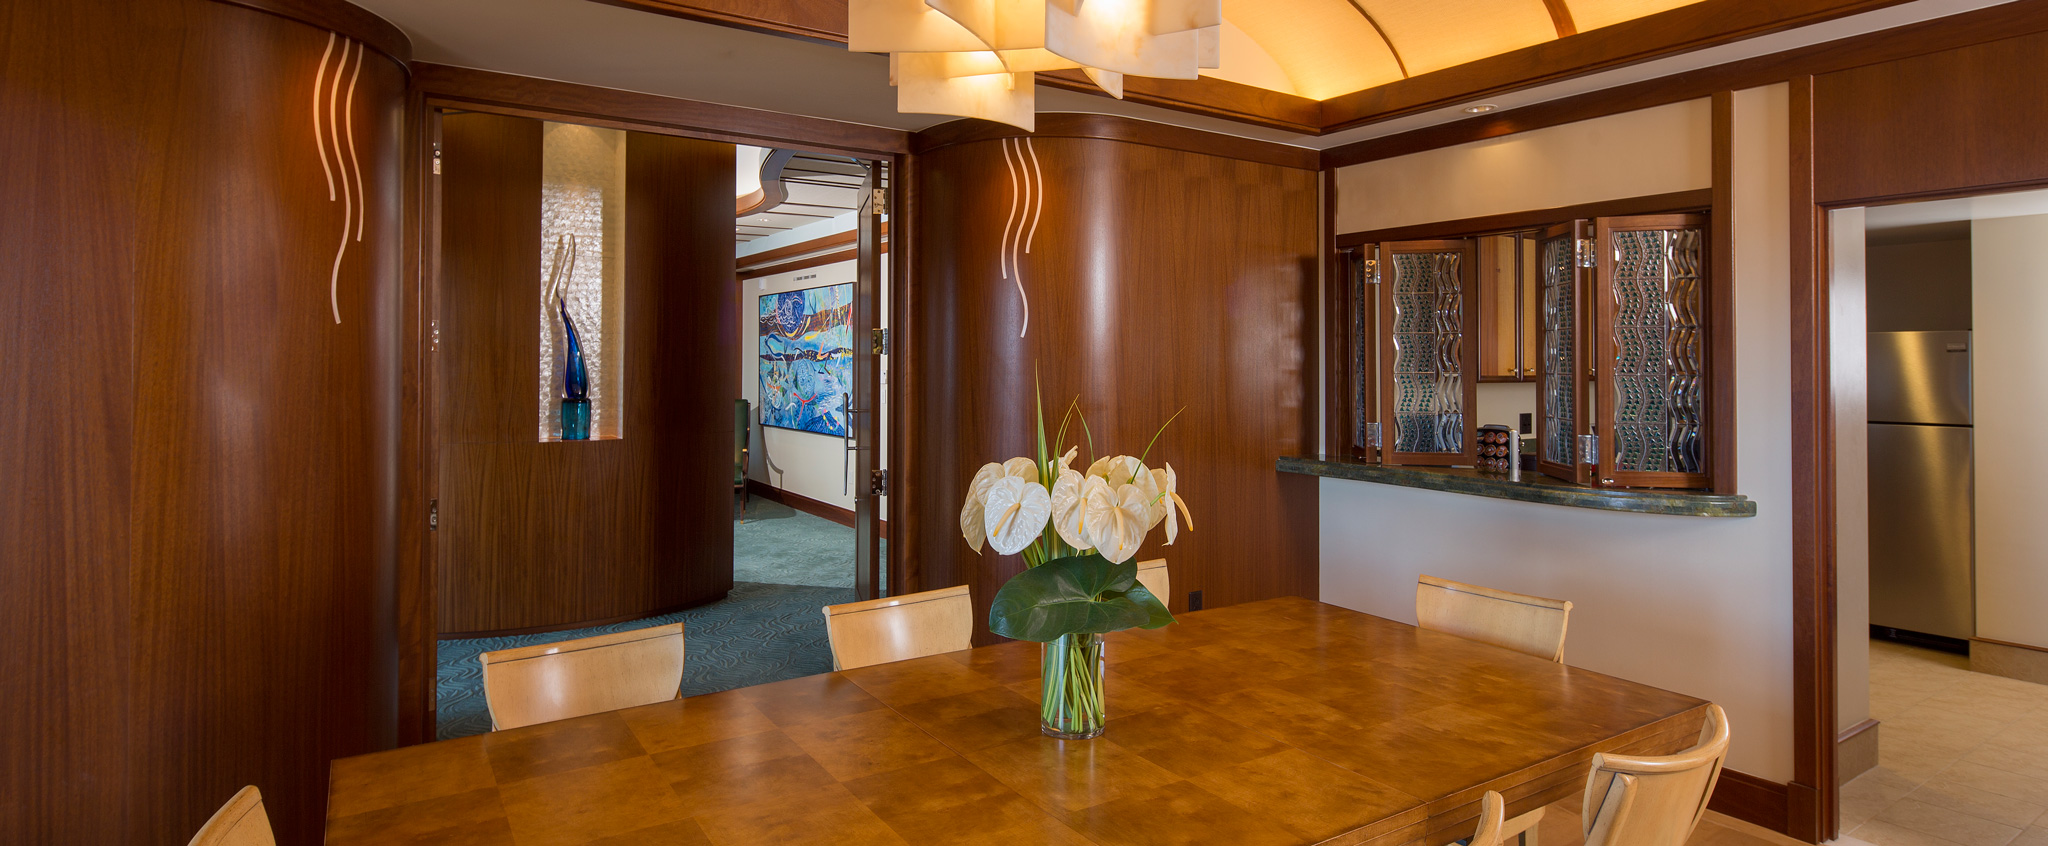 A wood paneled dining room features a long table and chairs and a ceiling lighting fixture